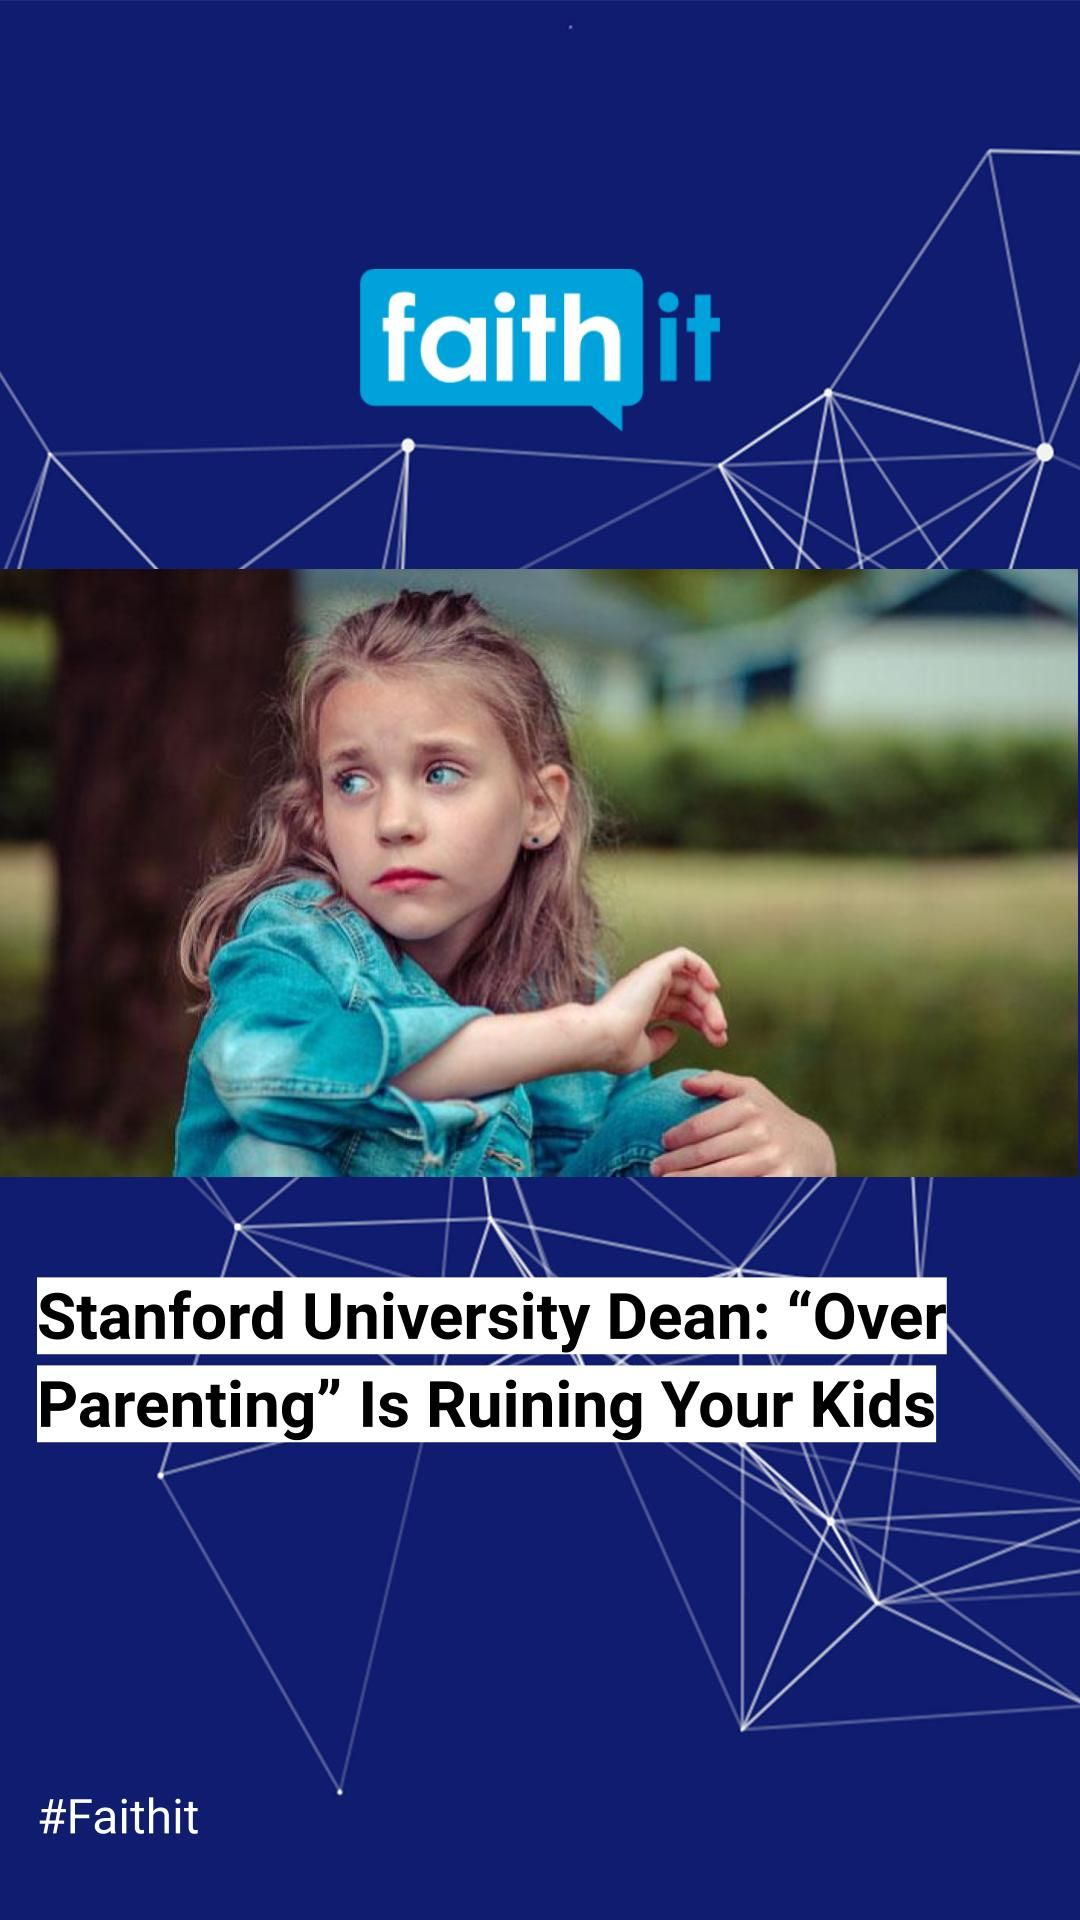 Stanford University Dean Over Parenting Is Ruining Your